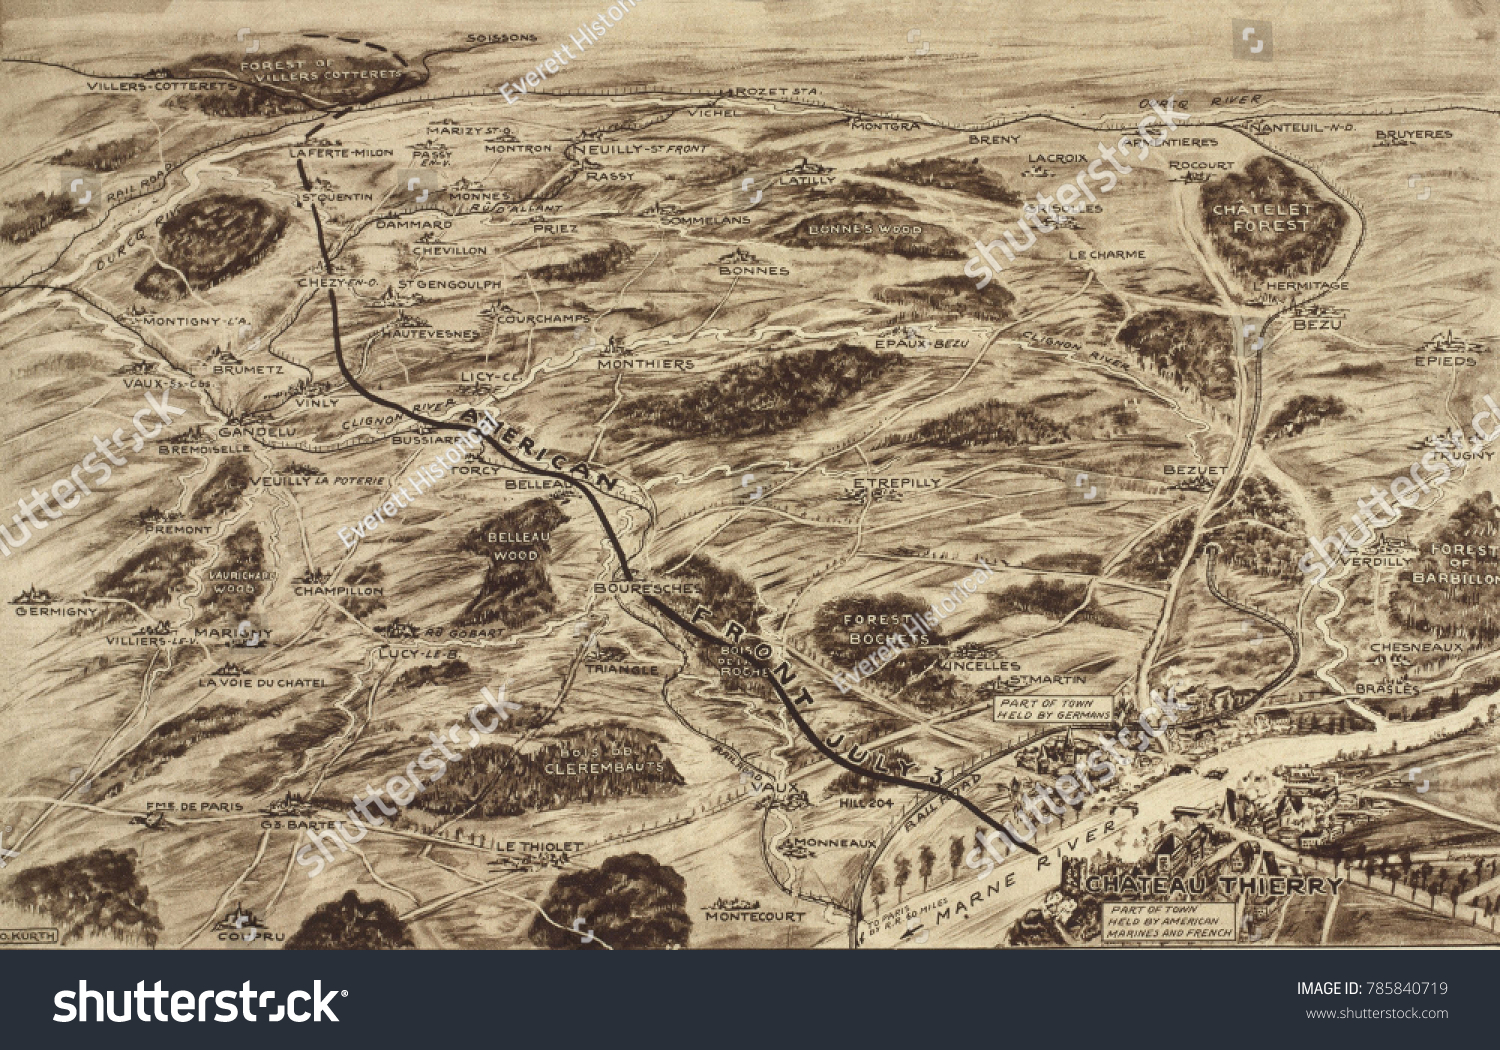 World war 1 map us battle stock photo royalty free 785840719 world war 1 map us battle stock photo royalty free 785840719 shutterstock gumiabroncs Image collections